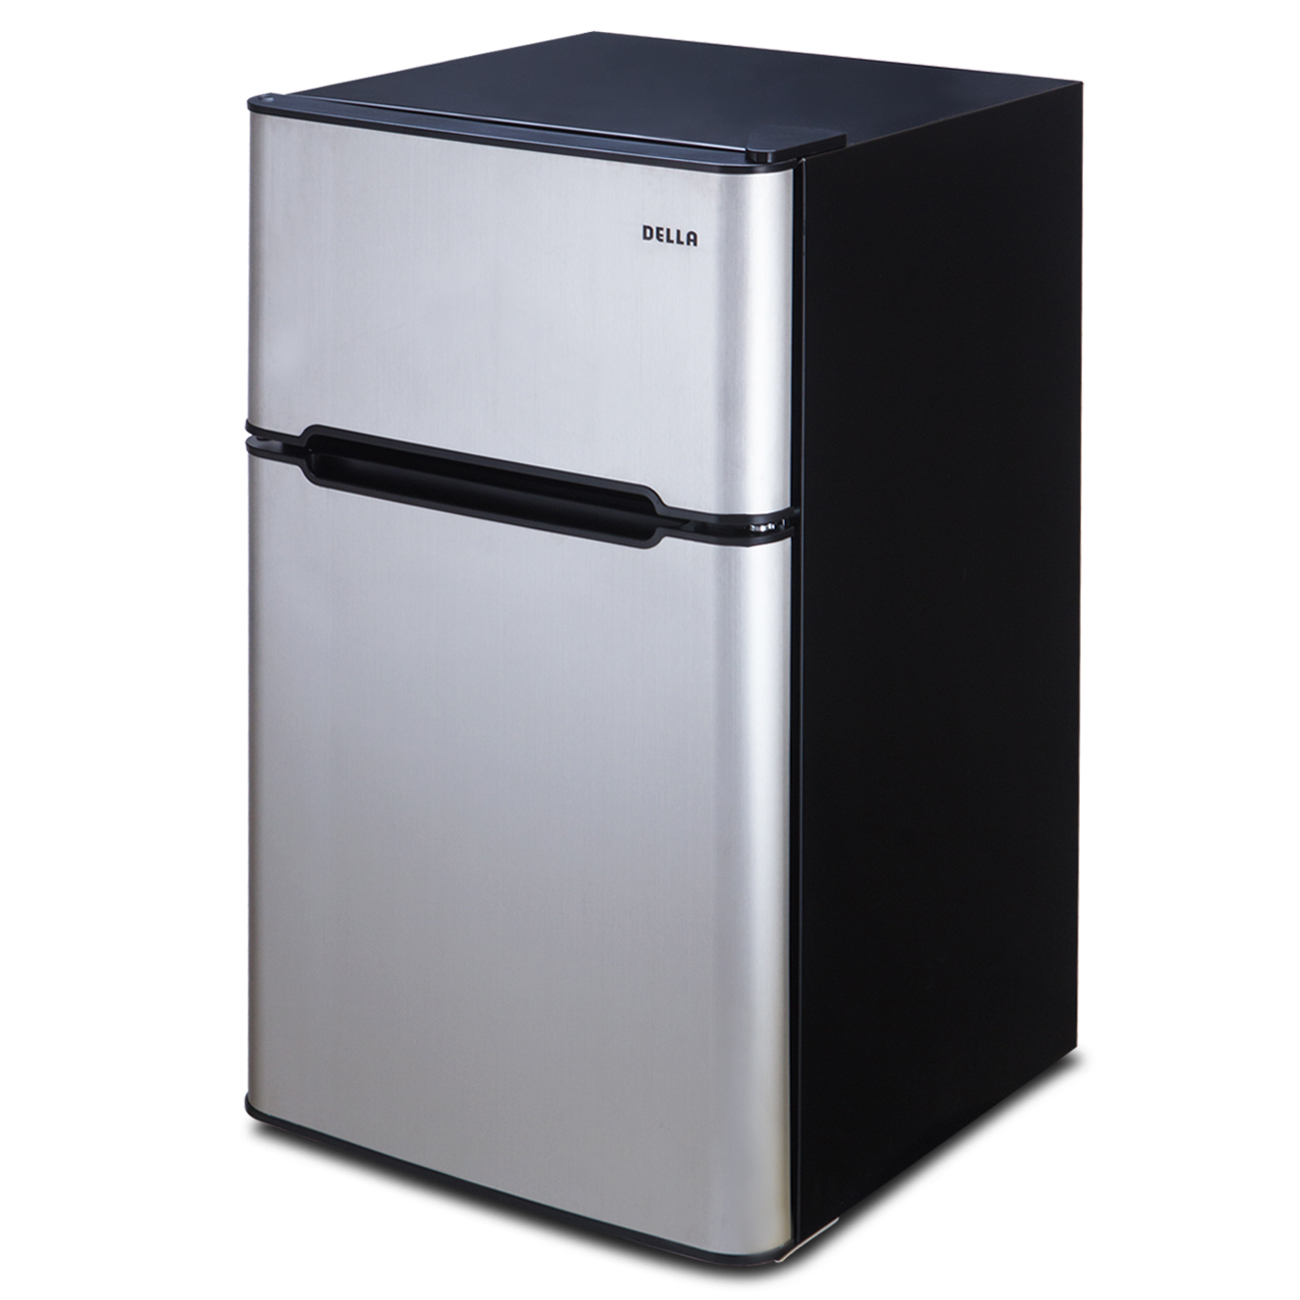 new compact 3 2 cu ft fridge mini dorm office refrigerator. Black Bedroom Furniture Sets. Home Design Ideas